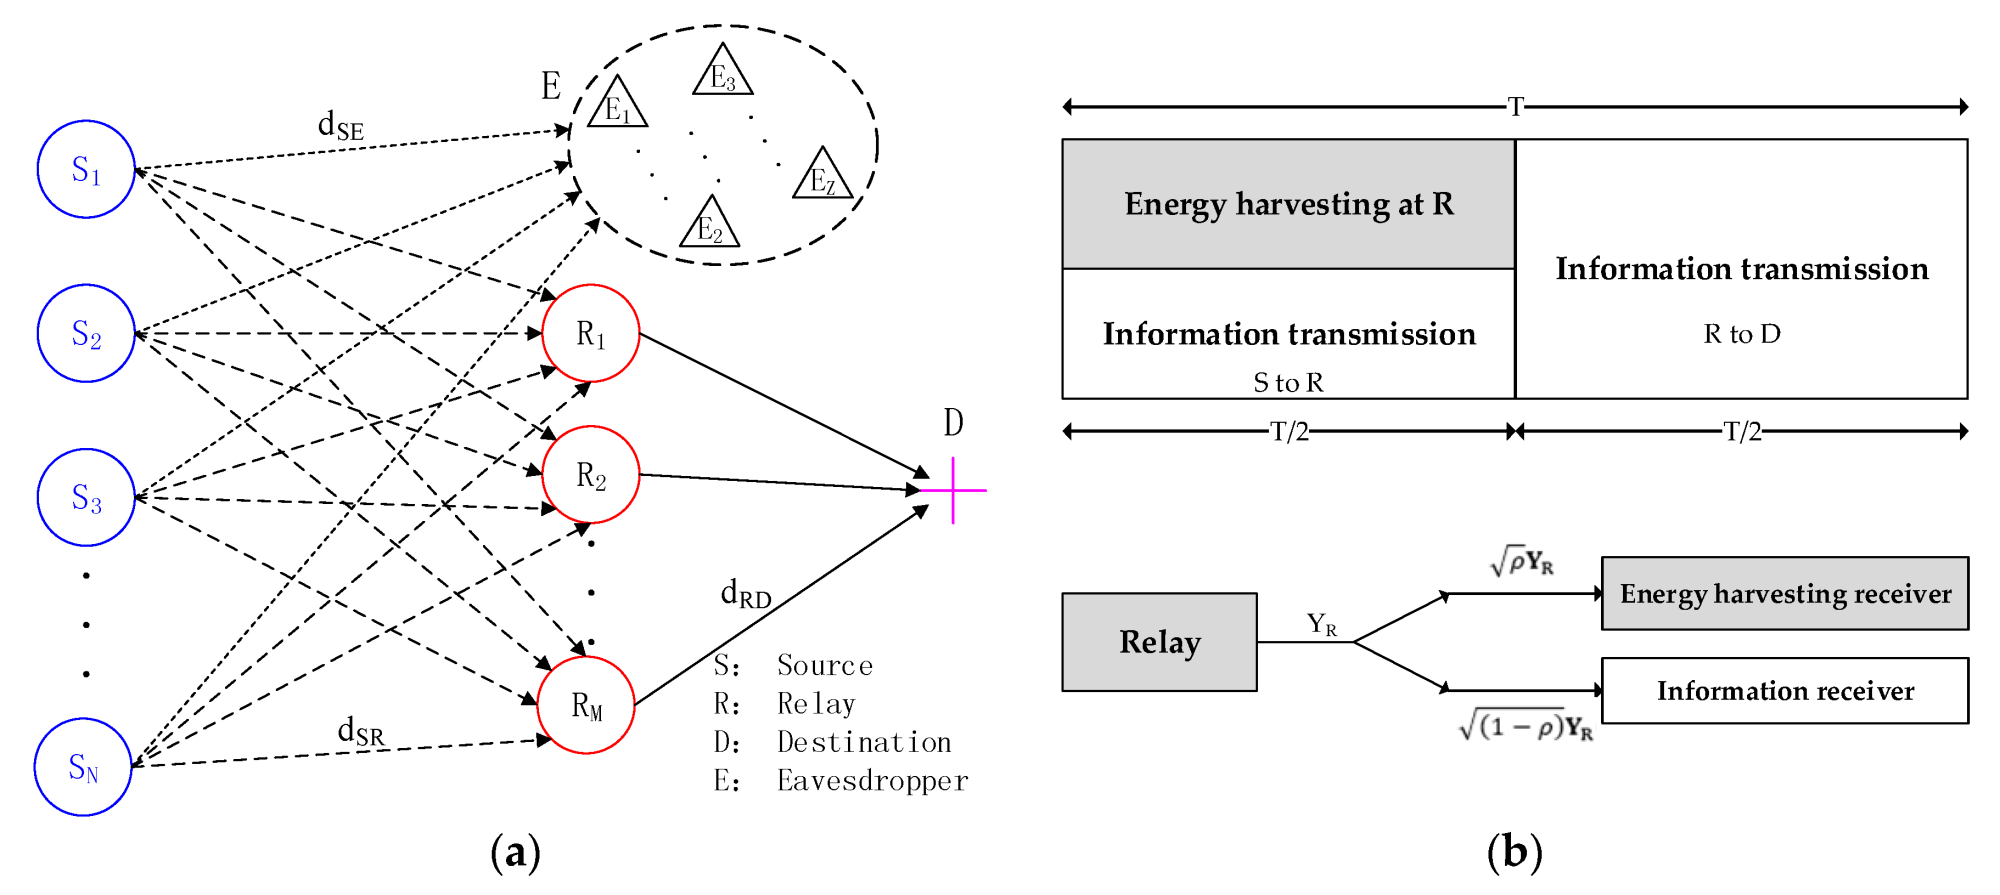 hight resolution of entropy free full text energy harvesting for physical layer physical security risk assessment template physical layer security diagrams